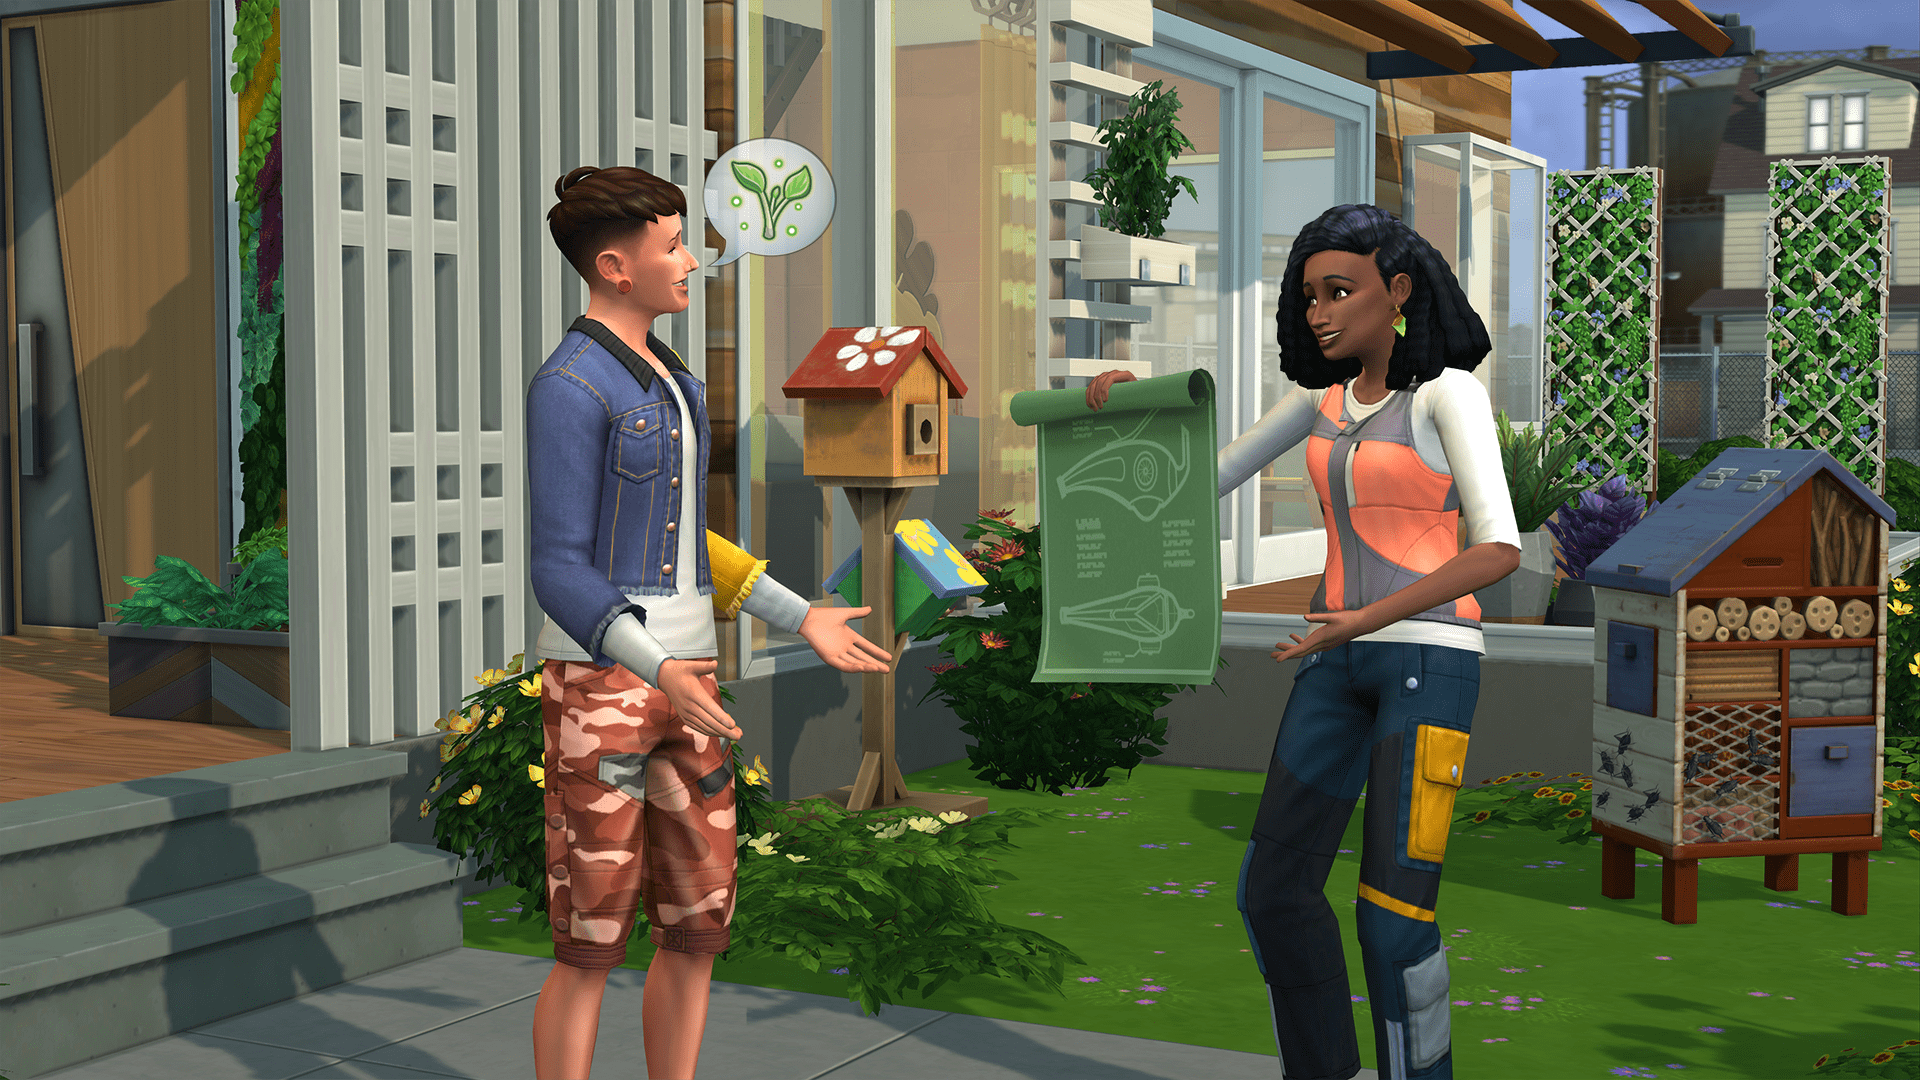 The Sims 4: Eco Living - two Sims discuss environmental measures in a front yard